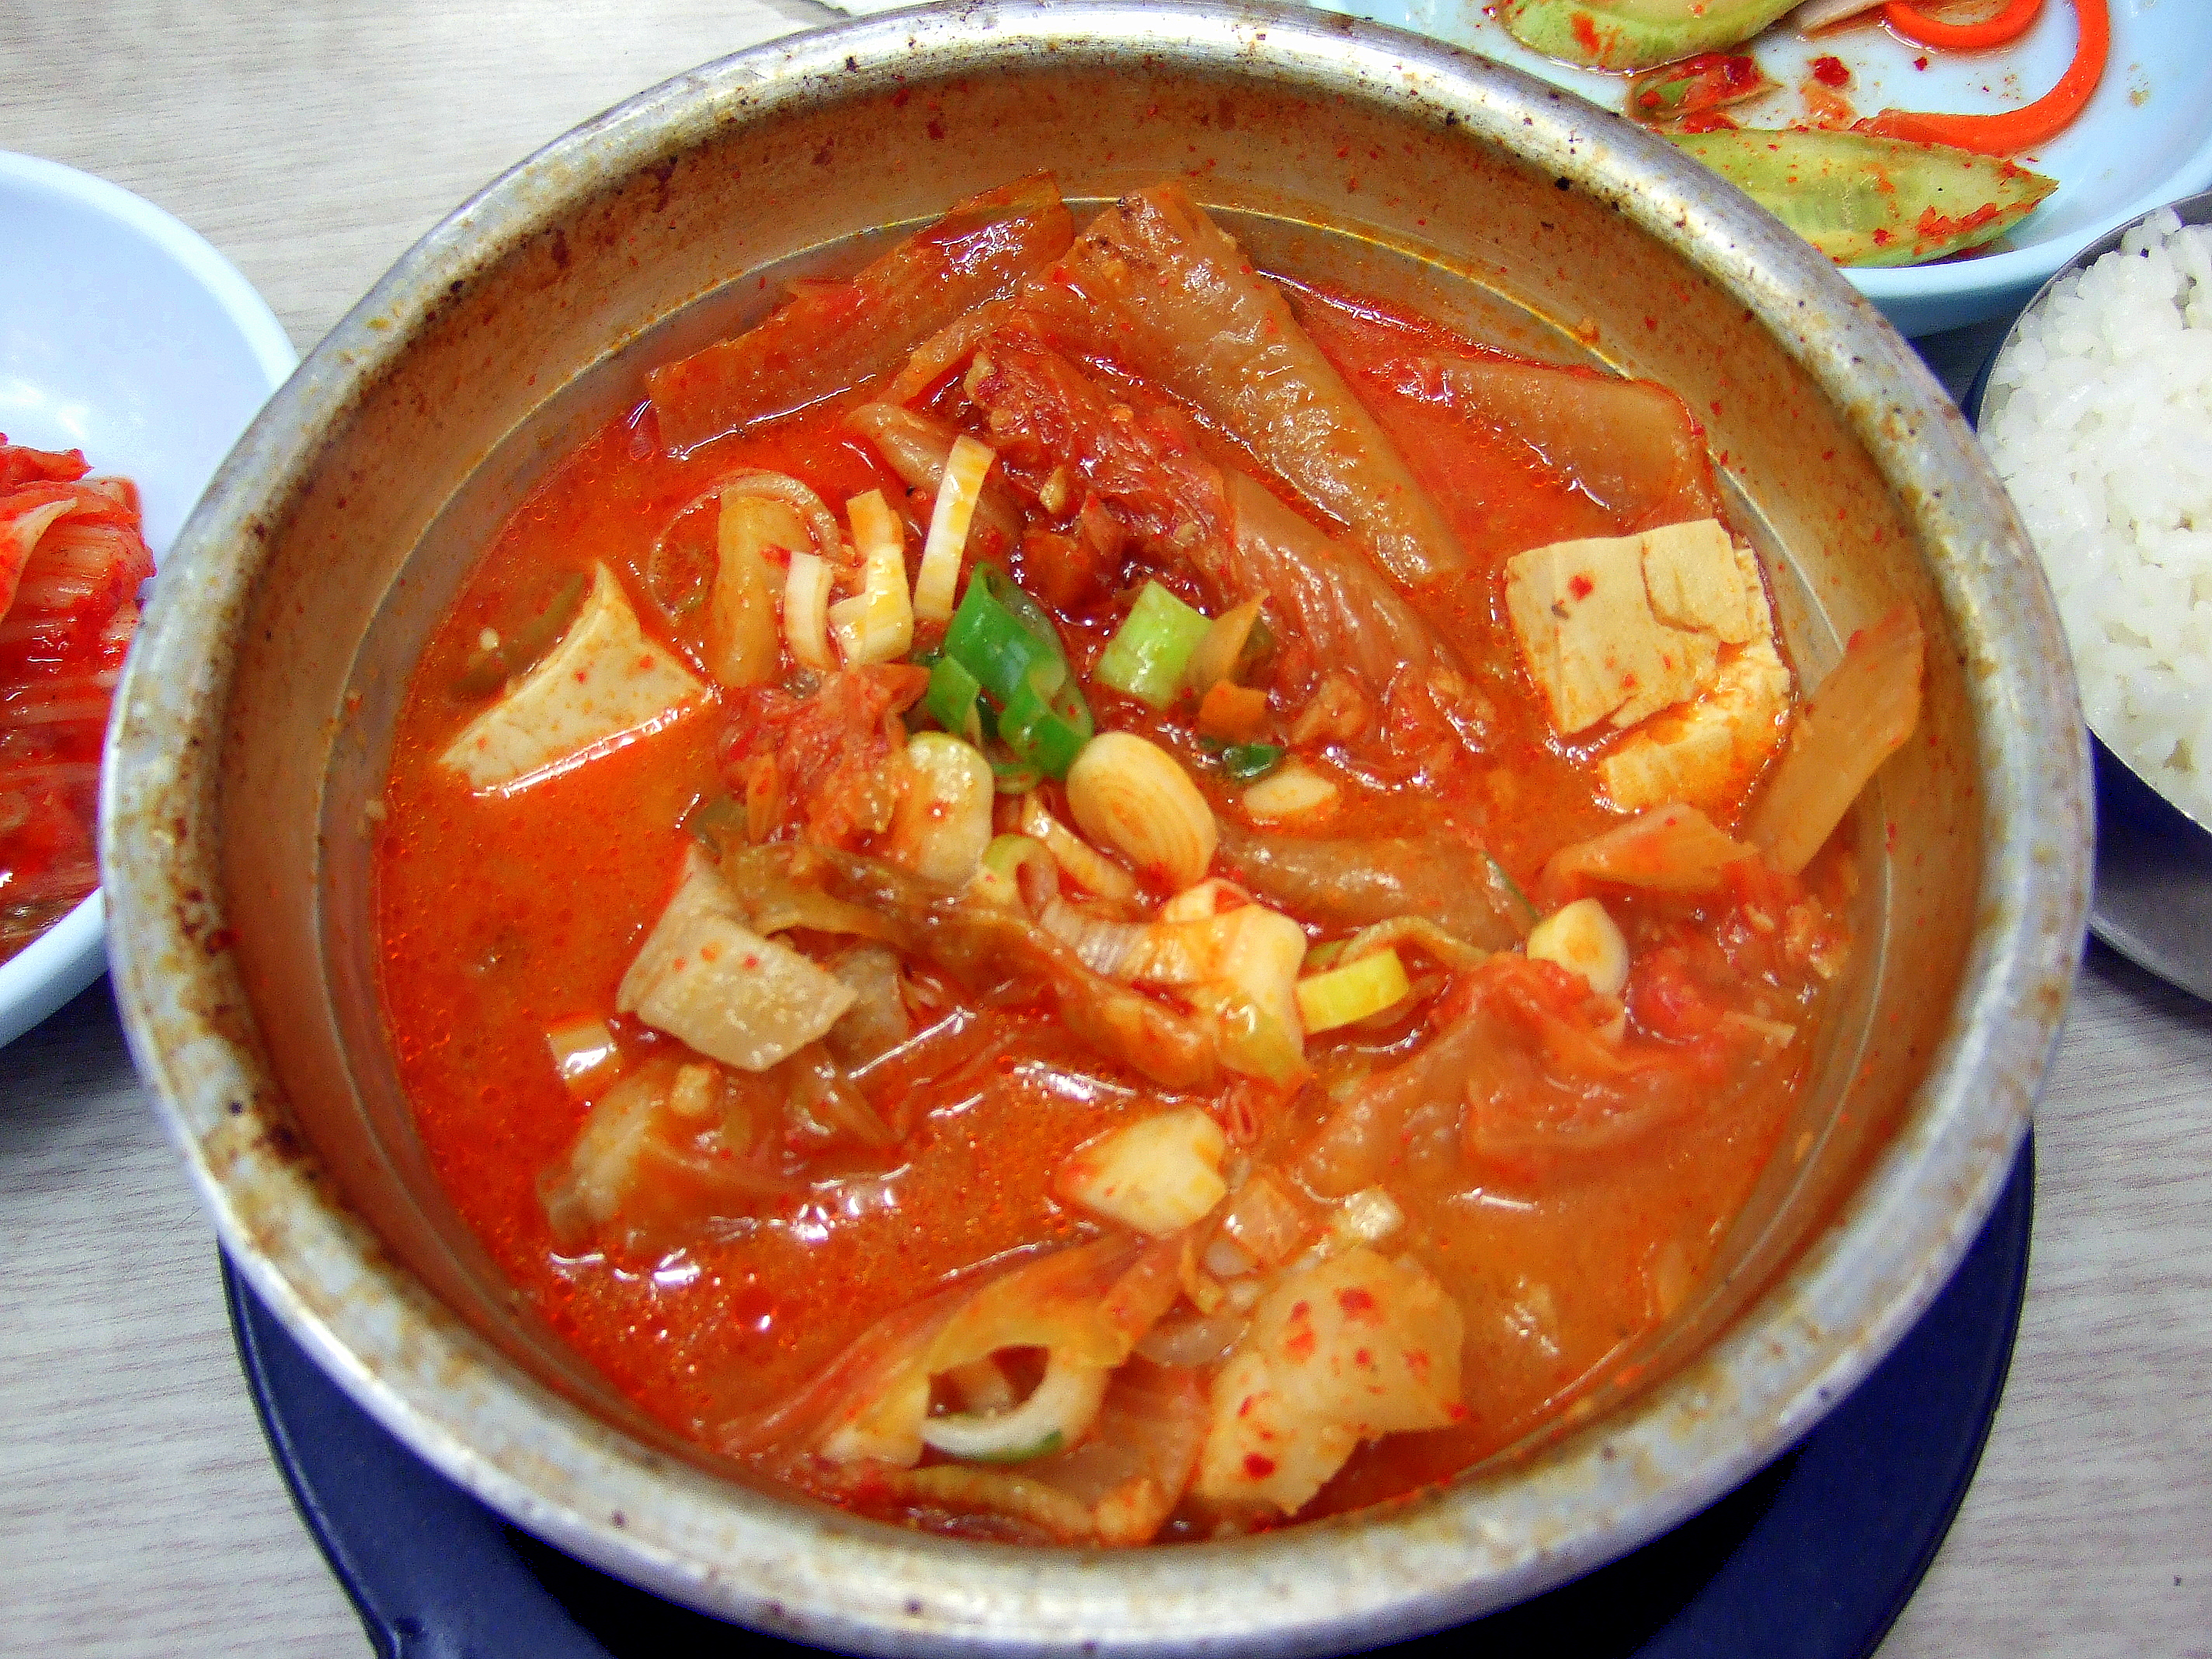 Is Spicy Food Good For Tinea Versicolor